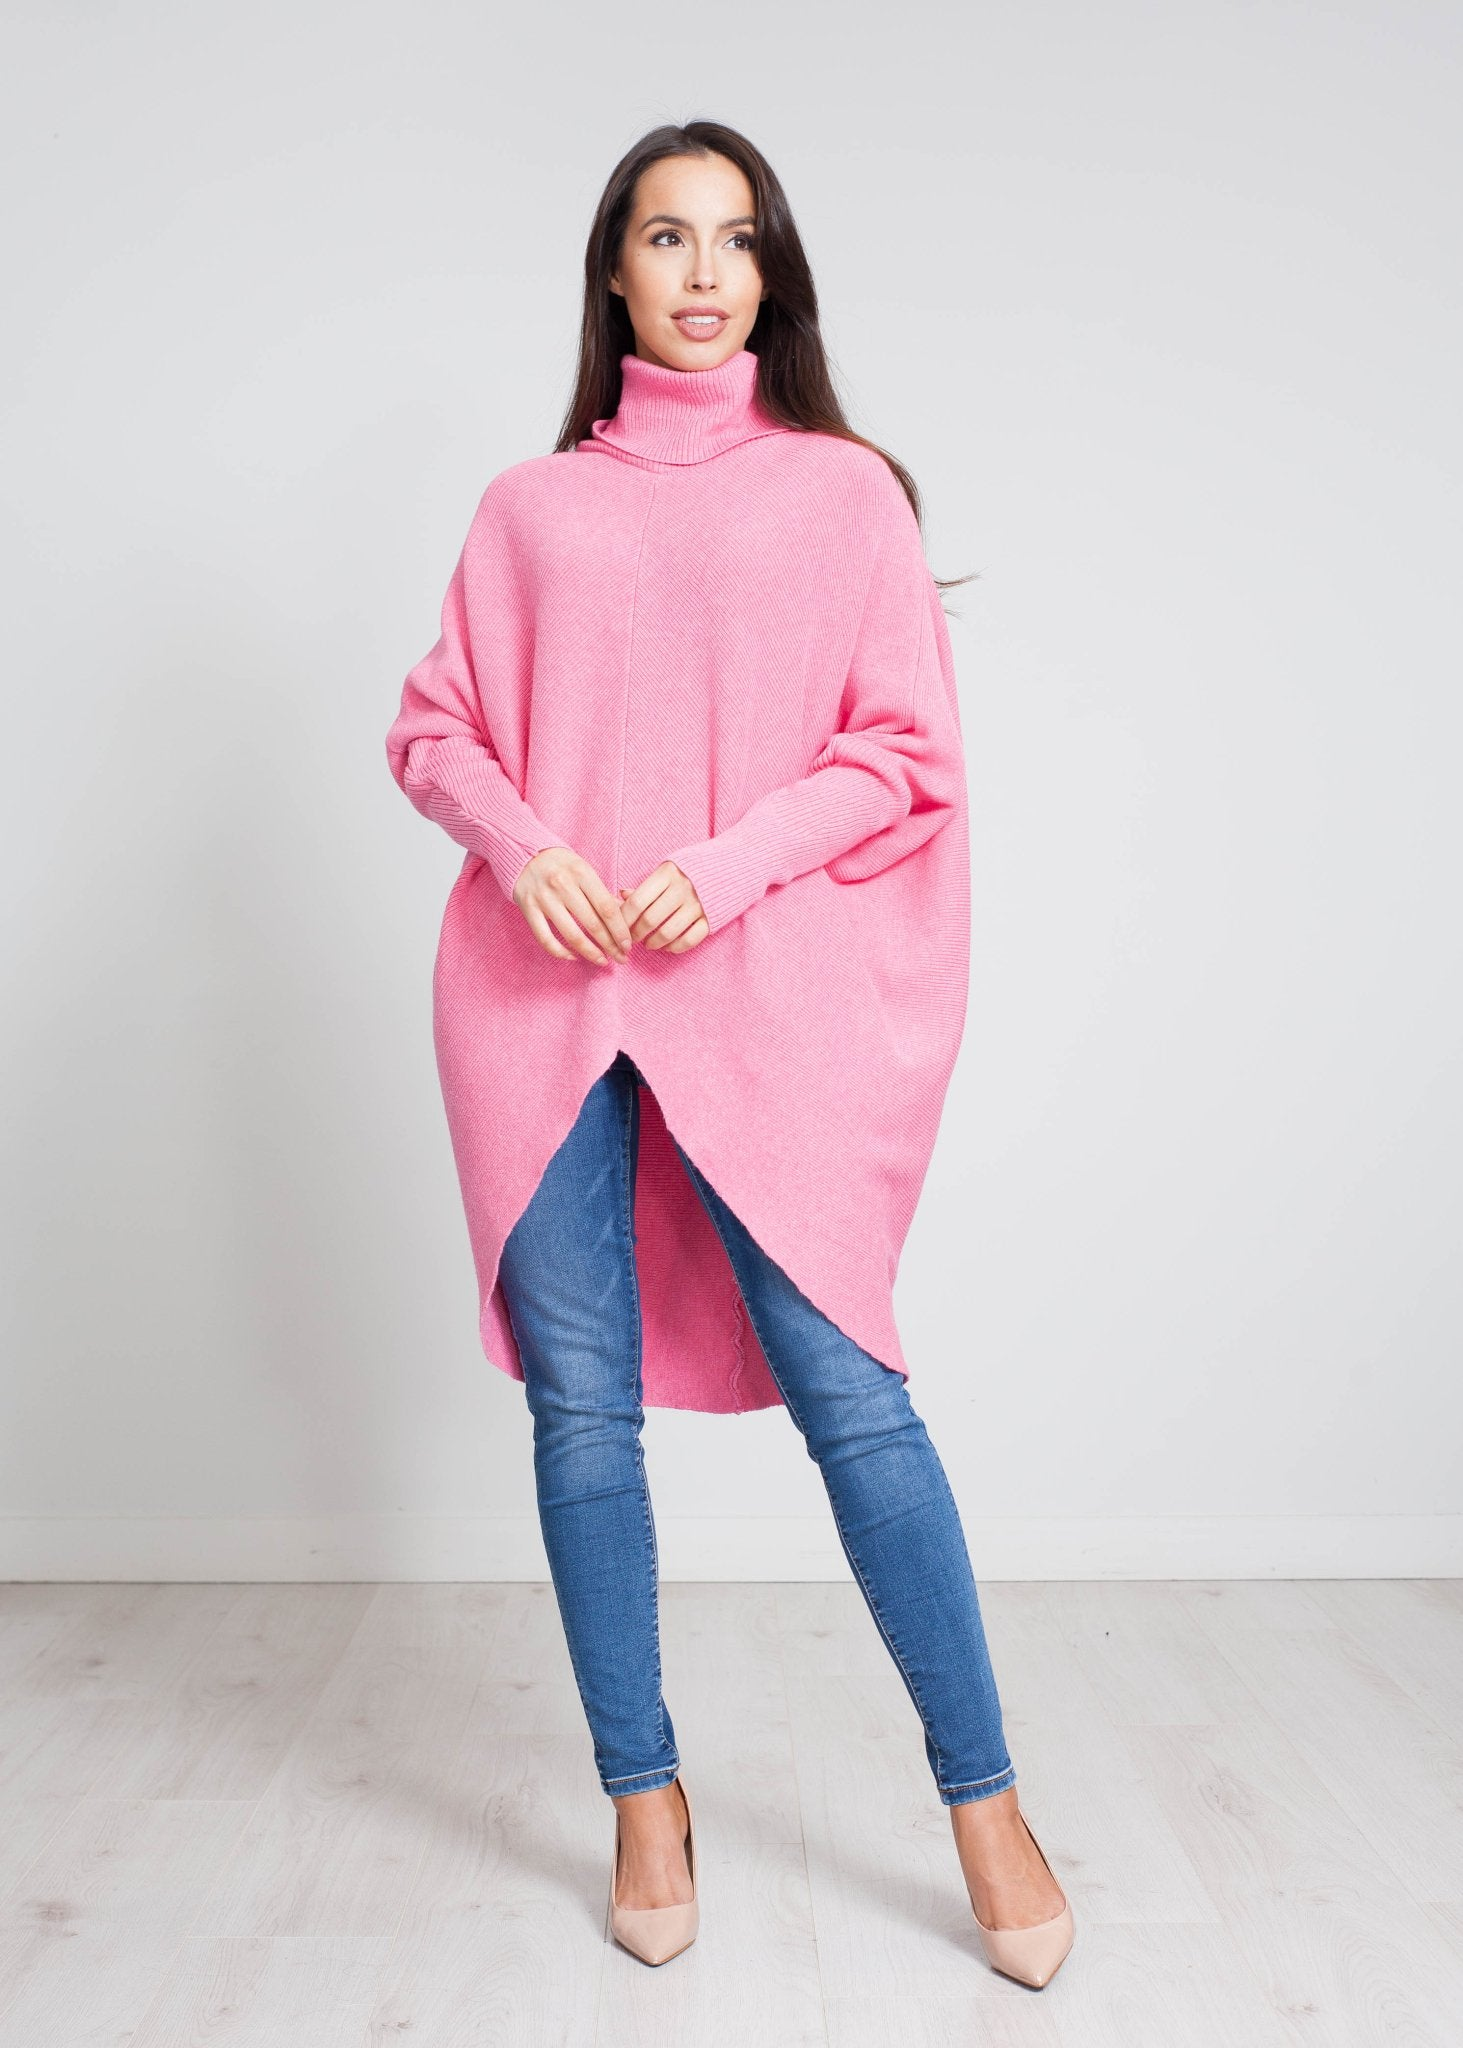 Nora Batwing Jumper Dress In Pink - The Walk in Wardrobe